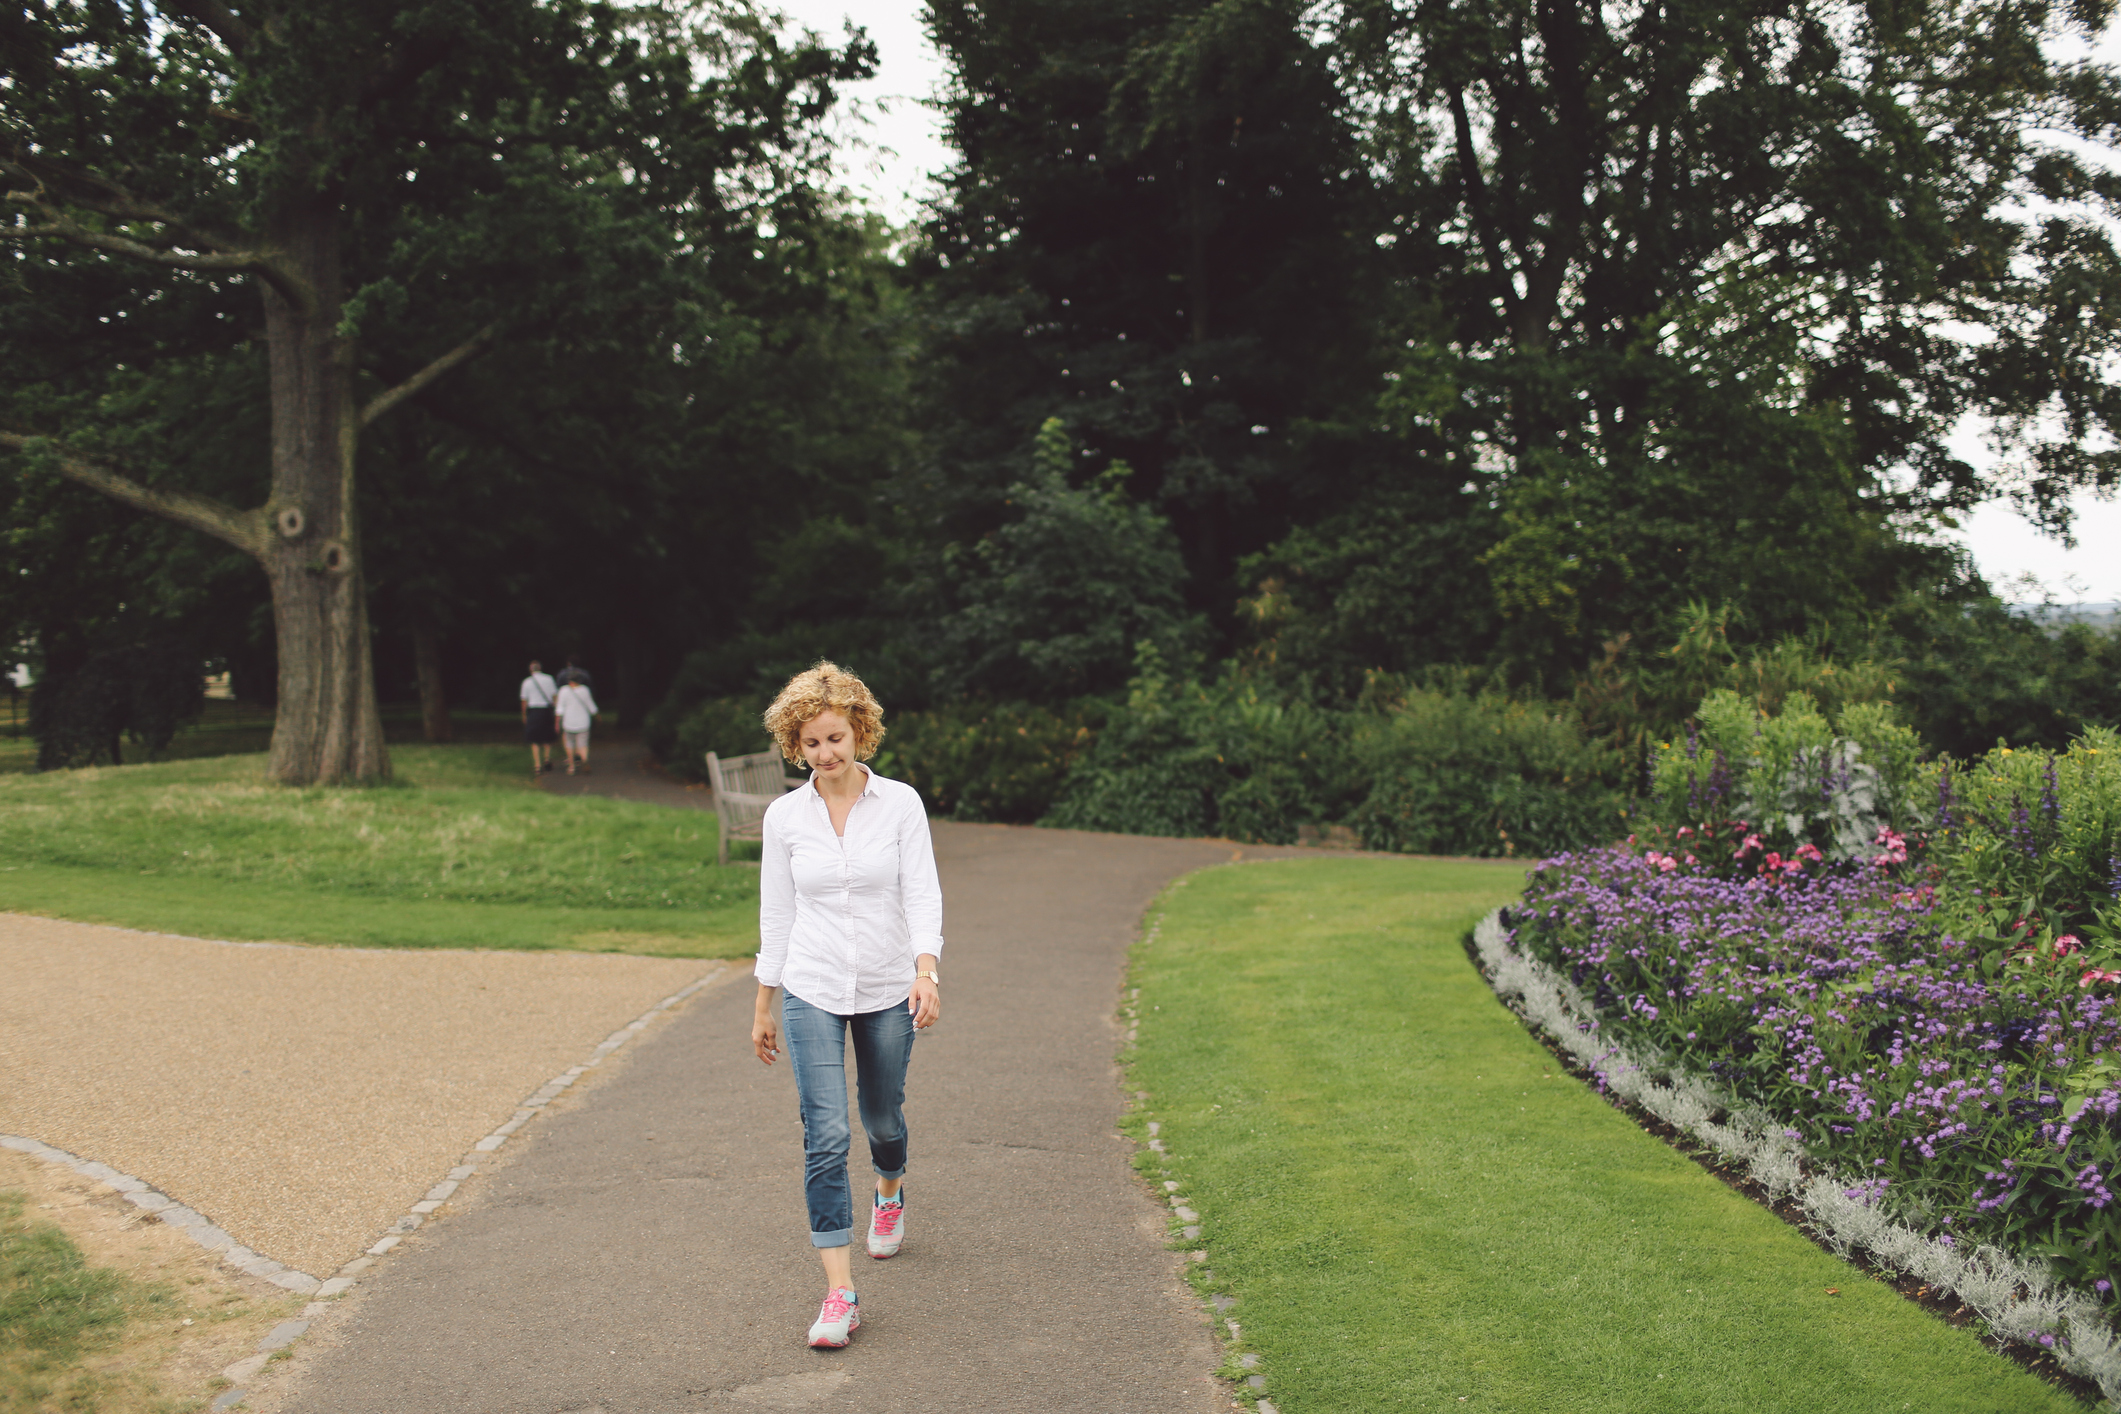 Lady walking through the park